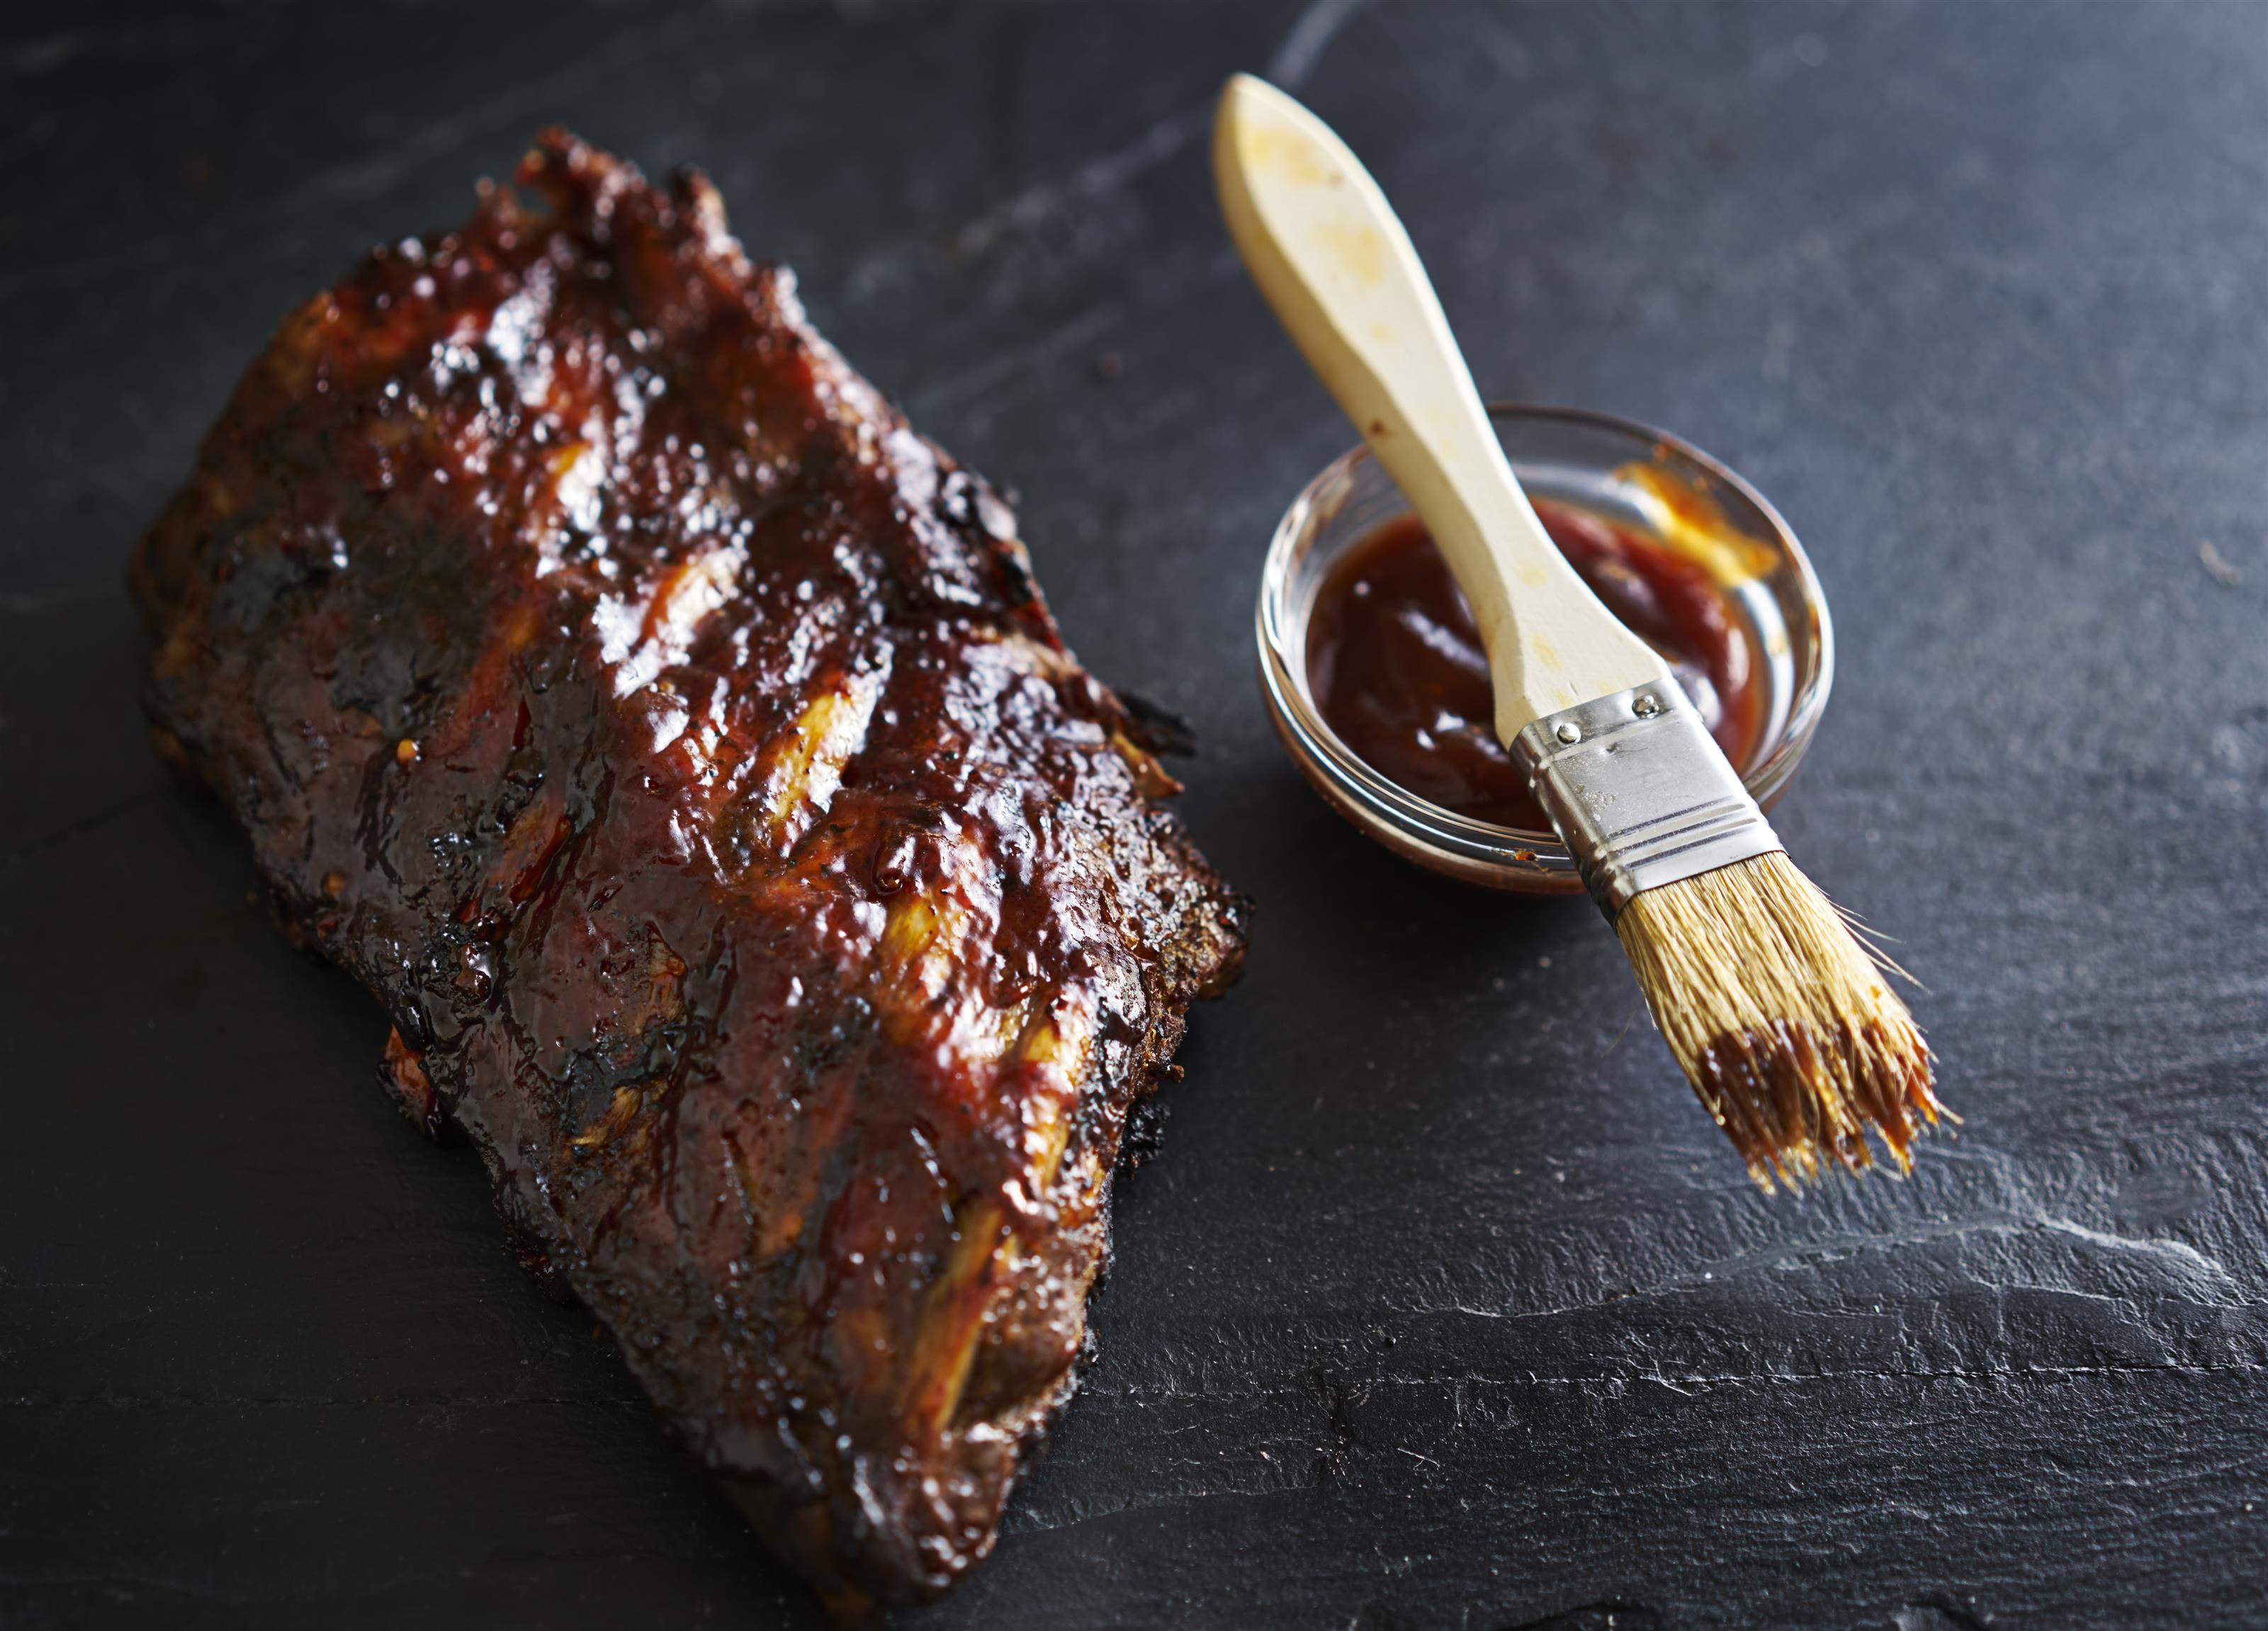 bbq ribs with a side of sauce and a brush